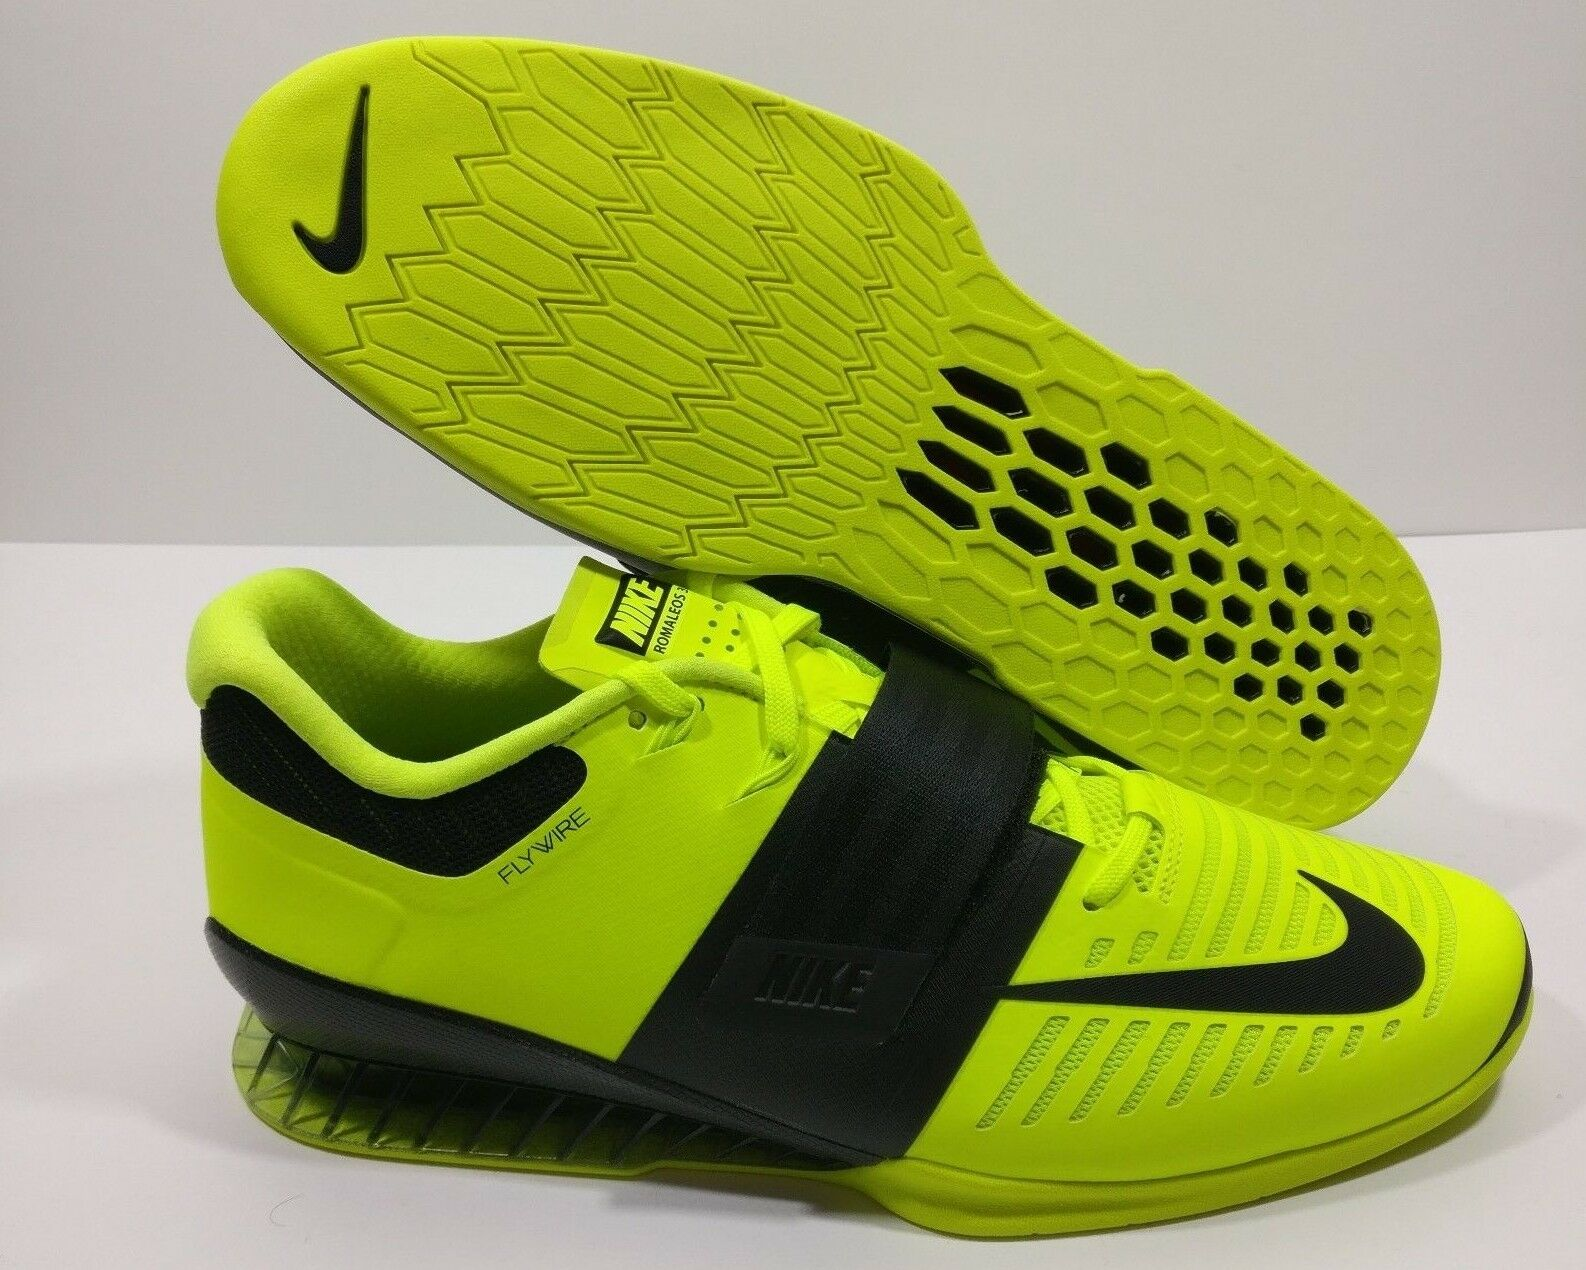 Mens Nike Romaleos 3 Weight Lifting Shoes Volt Black 852933 700 Size 14